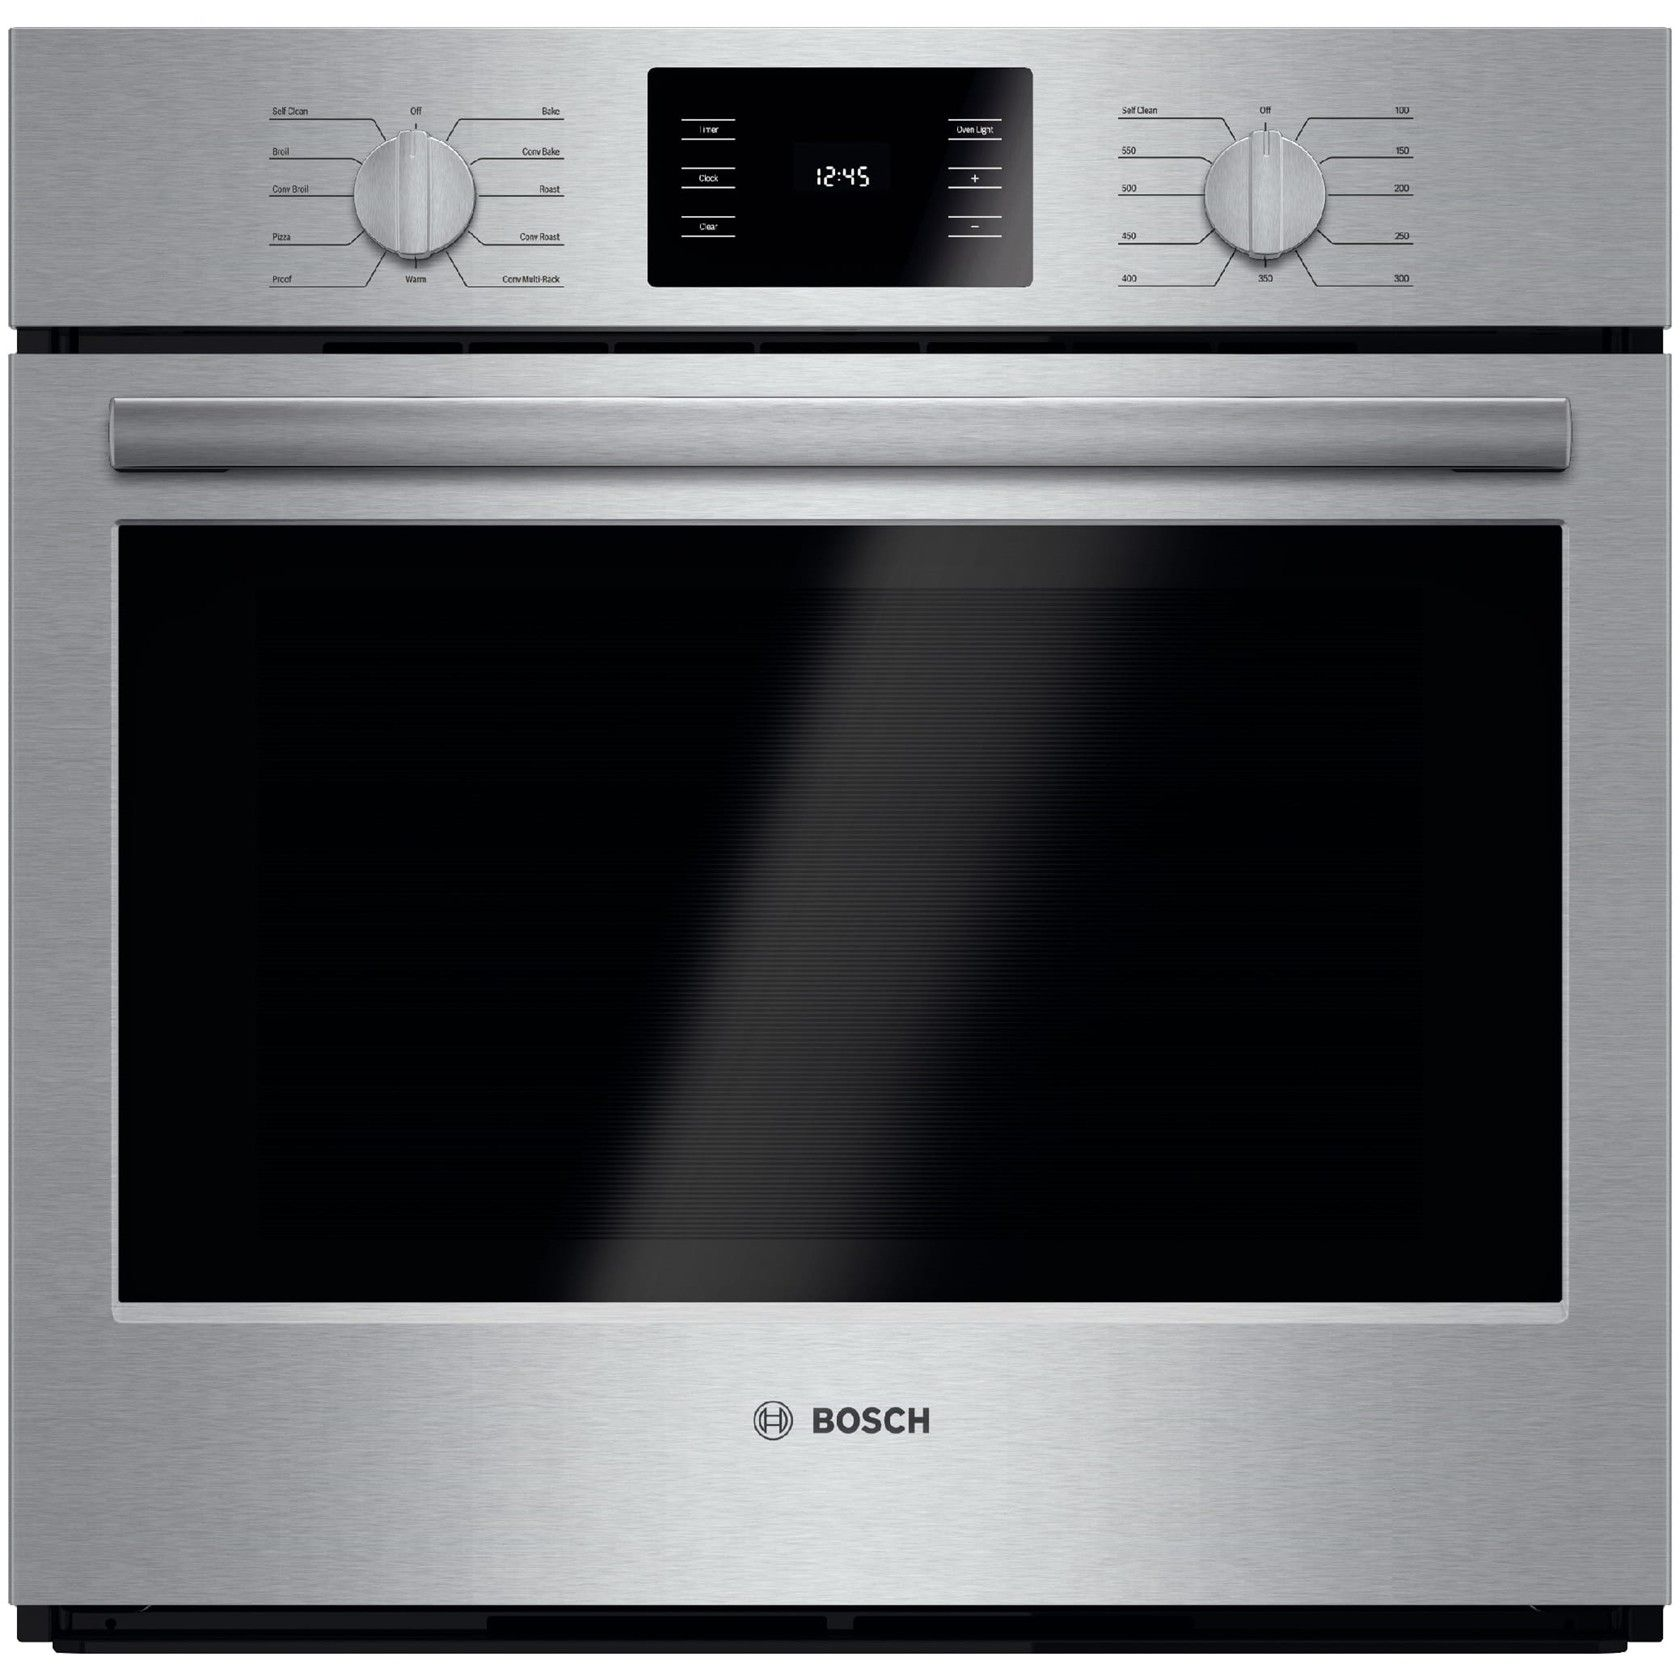 "30"" Single Wall Oven 500 Series - Stainless Steel HBL5451UC $1999"